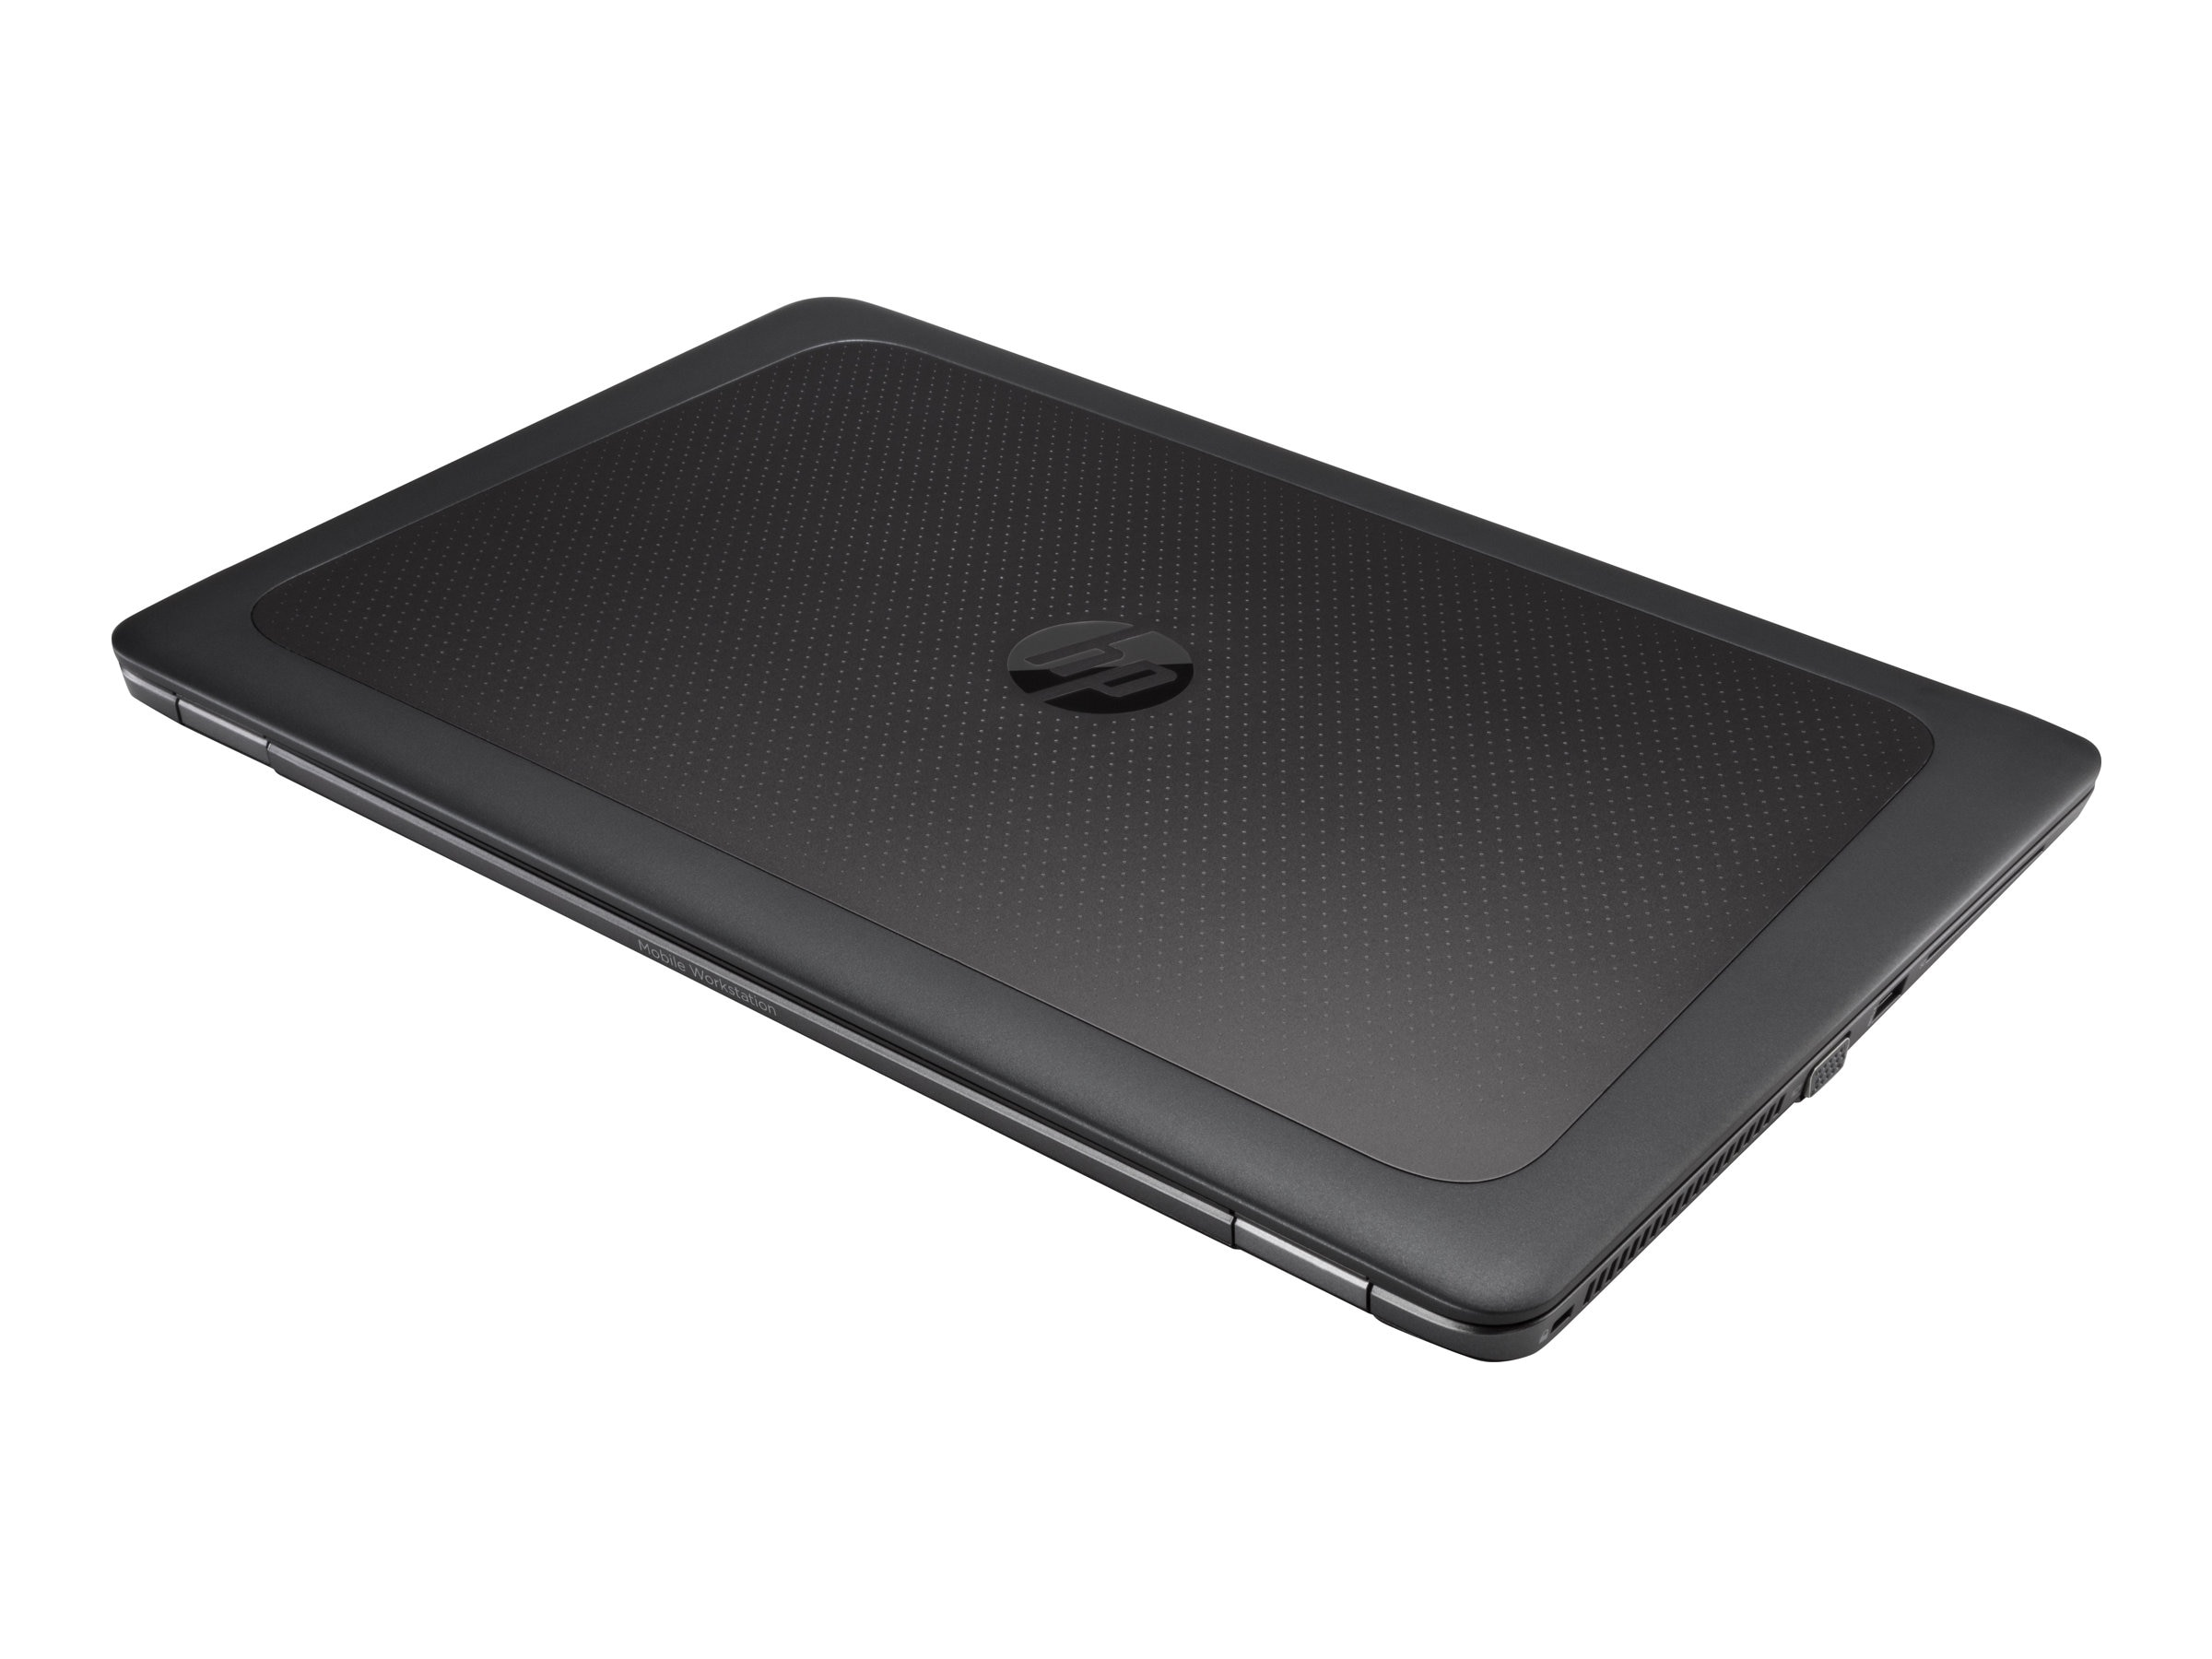 HP ZBook 15u G3 Core i7-6500U 2.5GHz 8GB 256GB SSD ac BT FR WC 3C W4190M 15.6 FHD W7P64-W10P